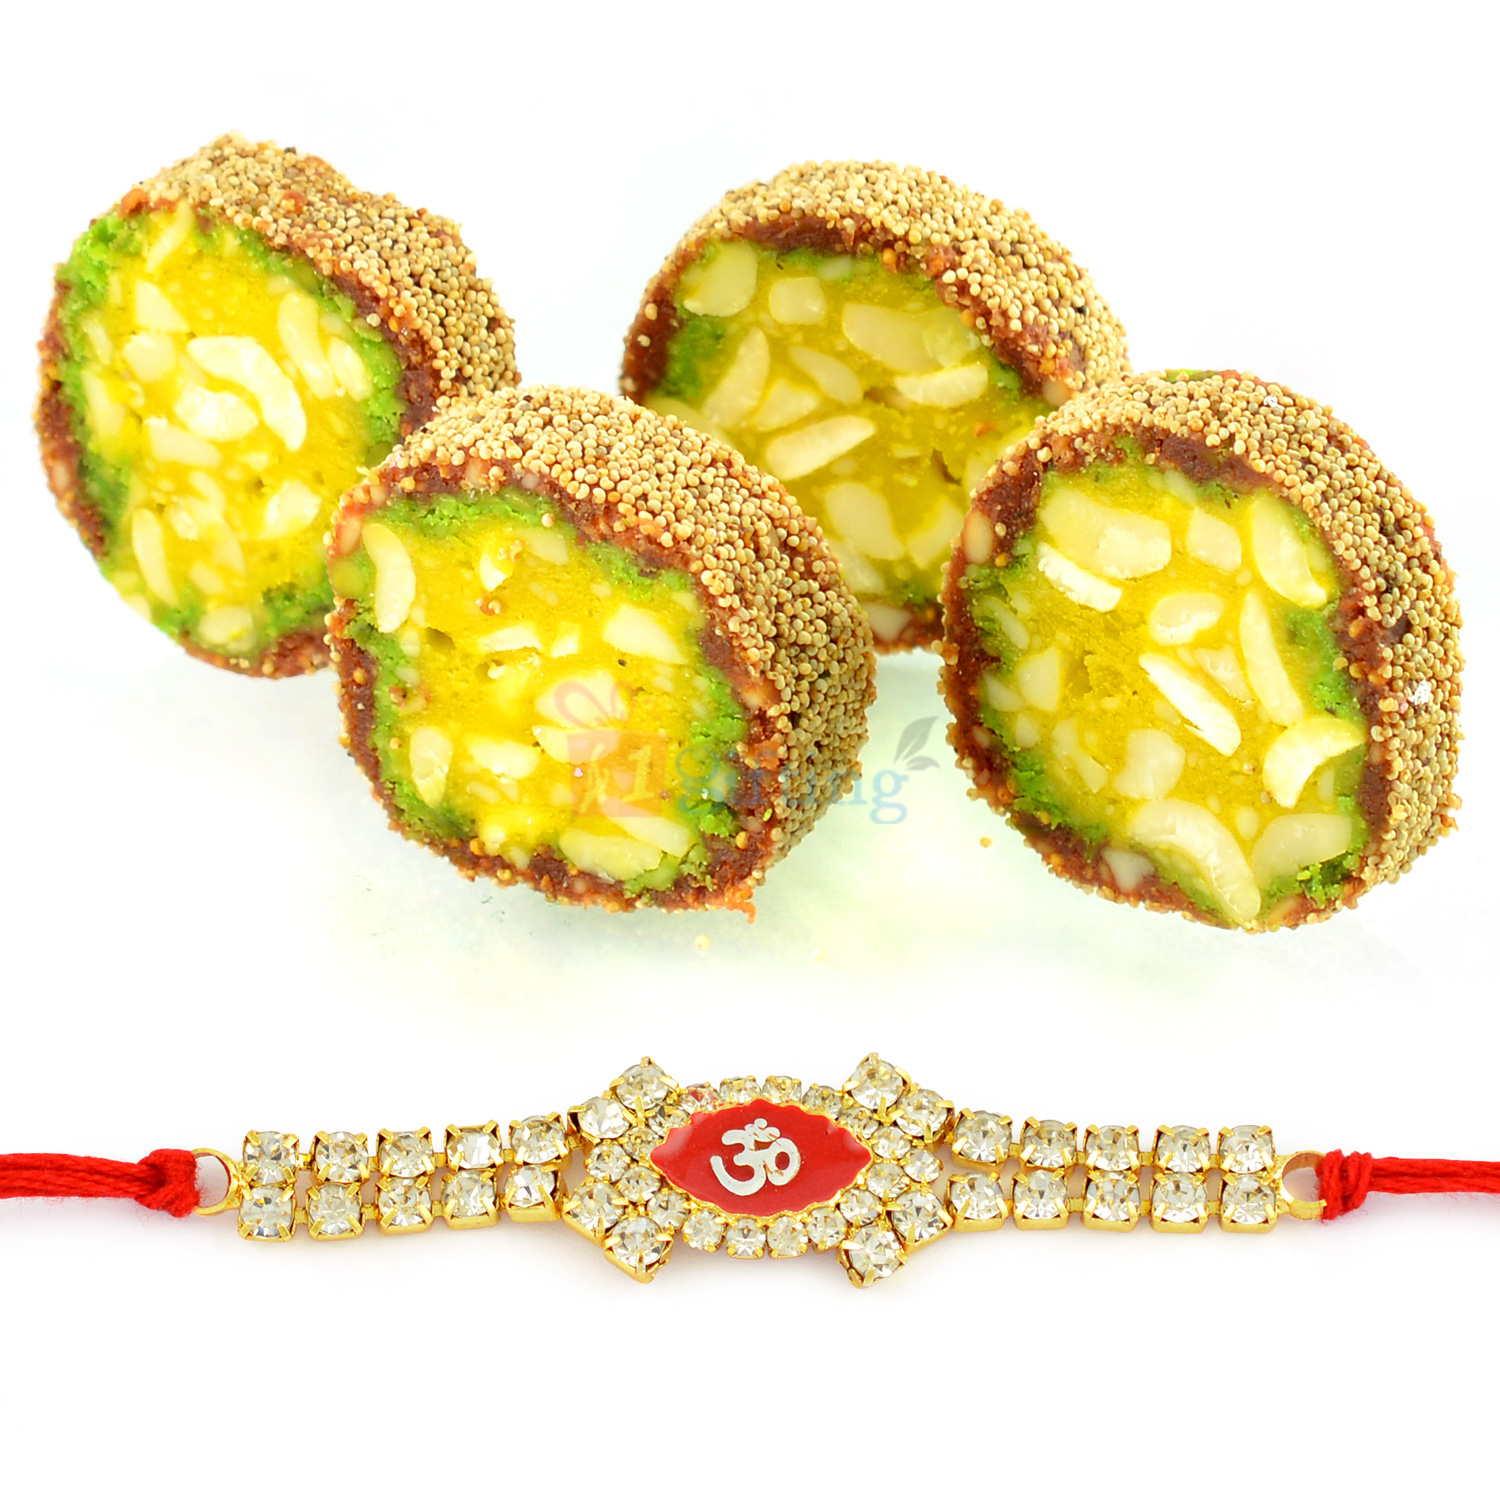 Spendid Auspicious Om Rakhi with Roll of Anjeer King Mithai